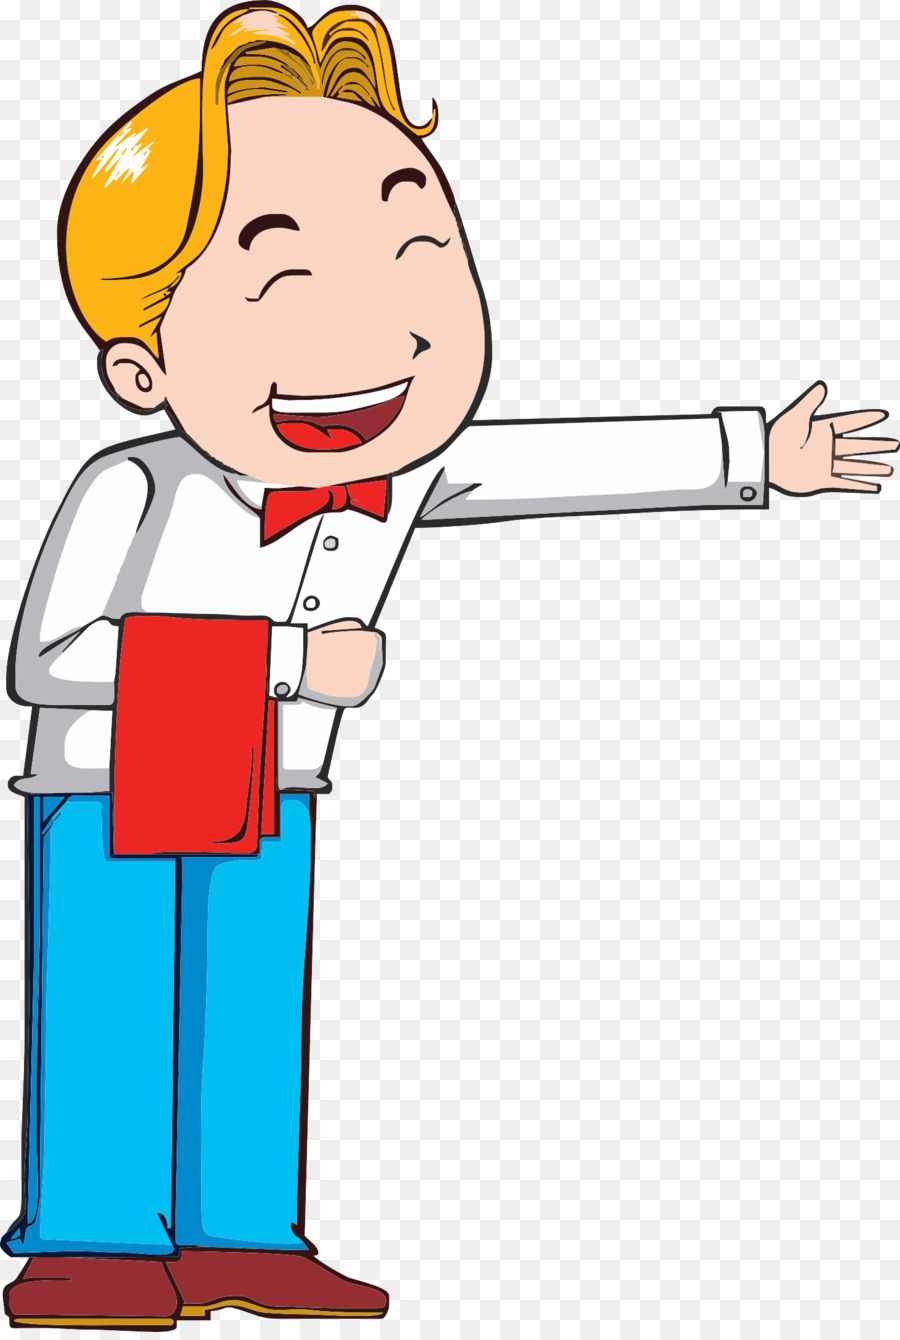 waiter download clip art welcome to the restaurant waiter png rh kisspng com water clip art free download water clip art free